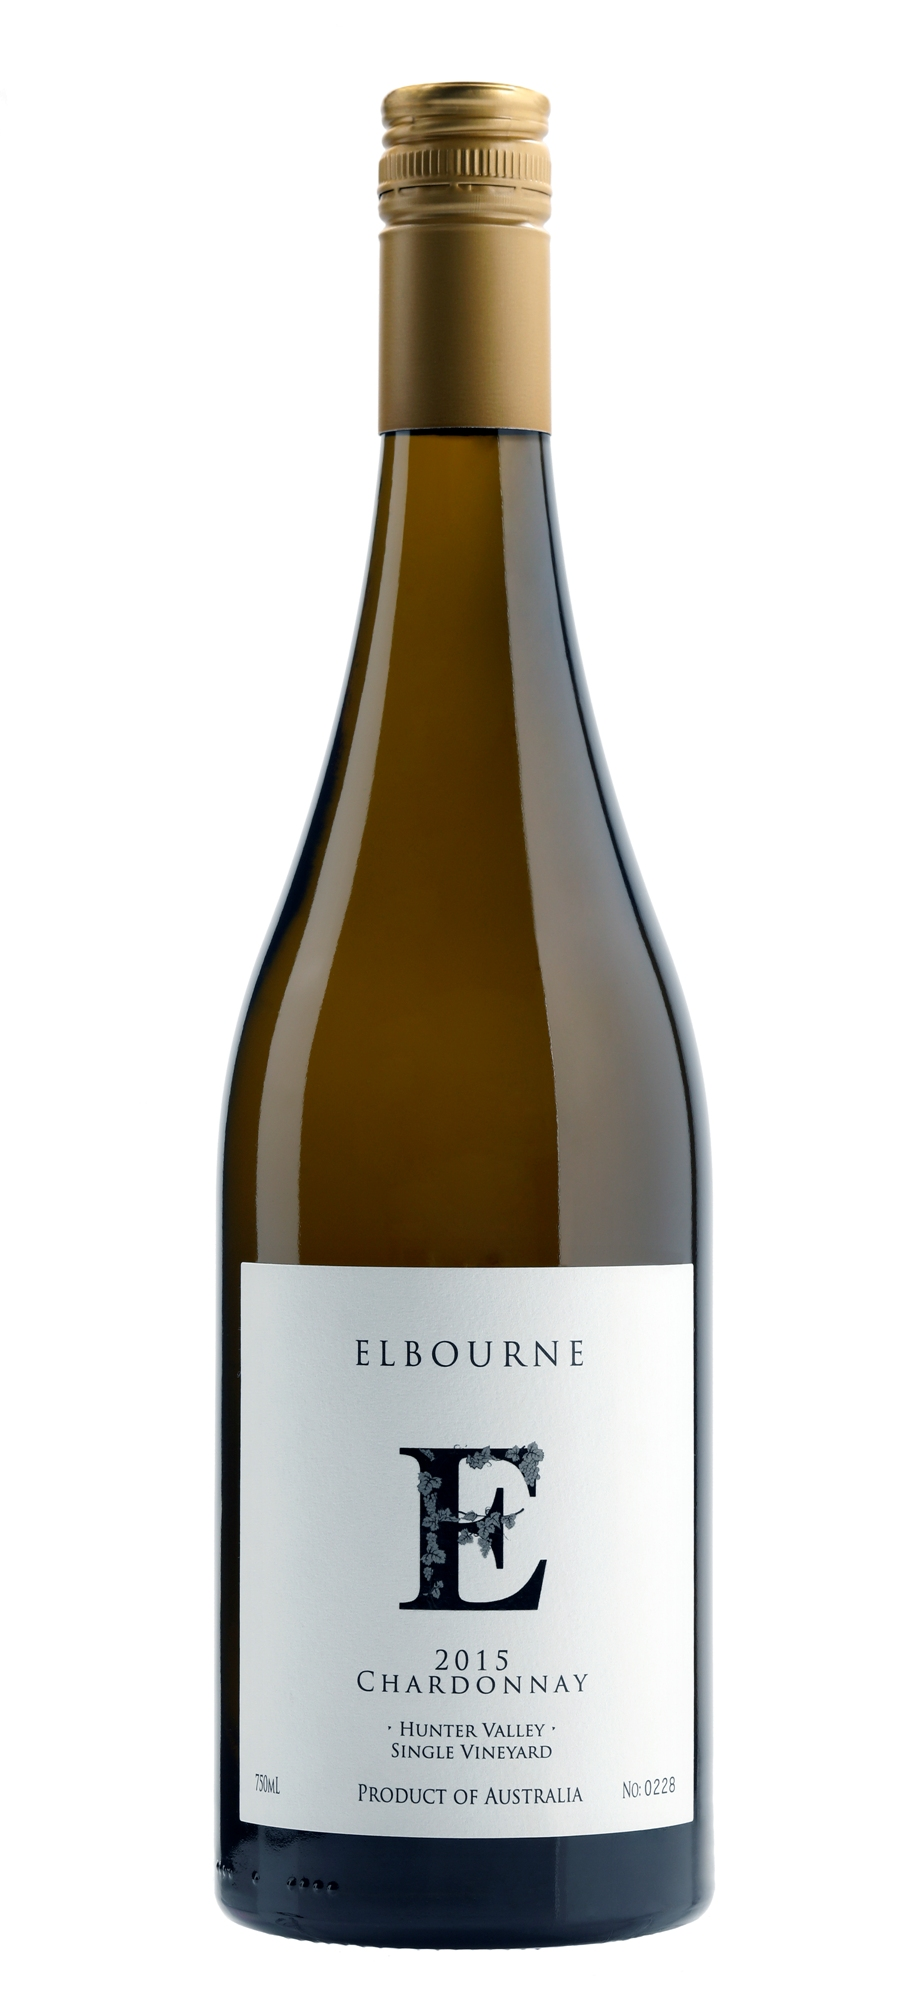 Elbourne Chardonnay 2015 Single Vineyard small.jpg